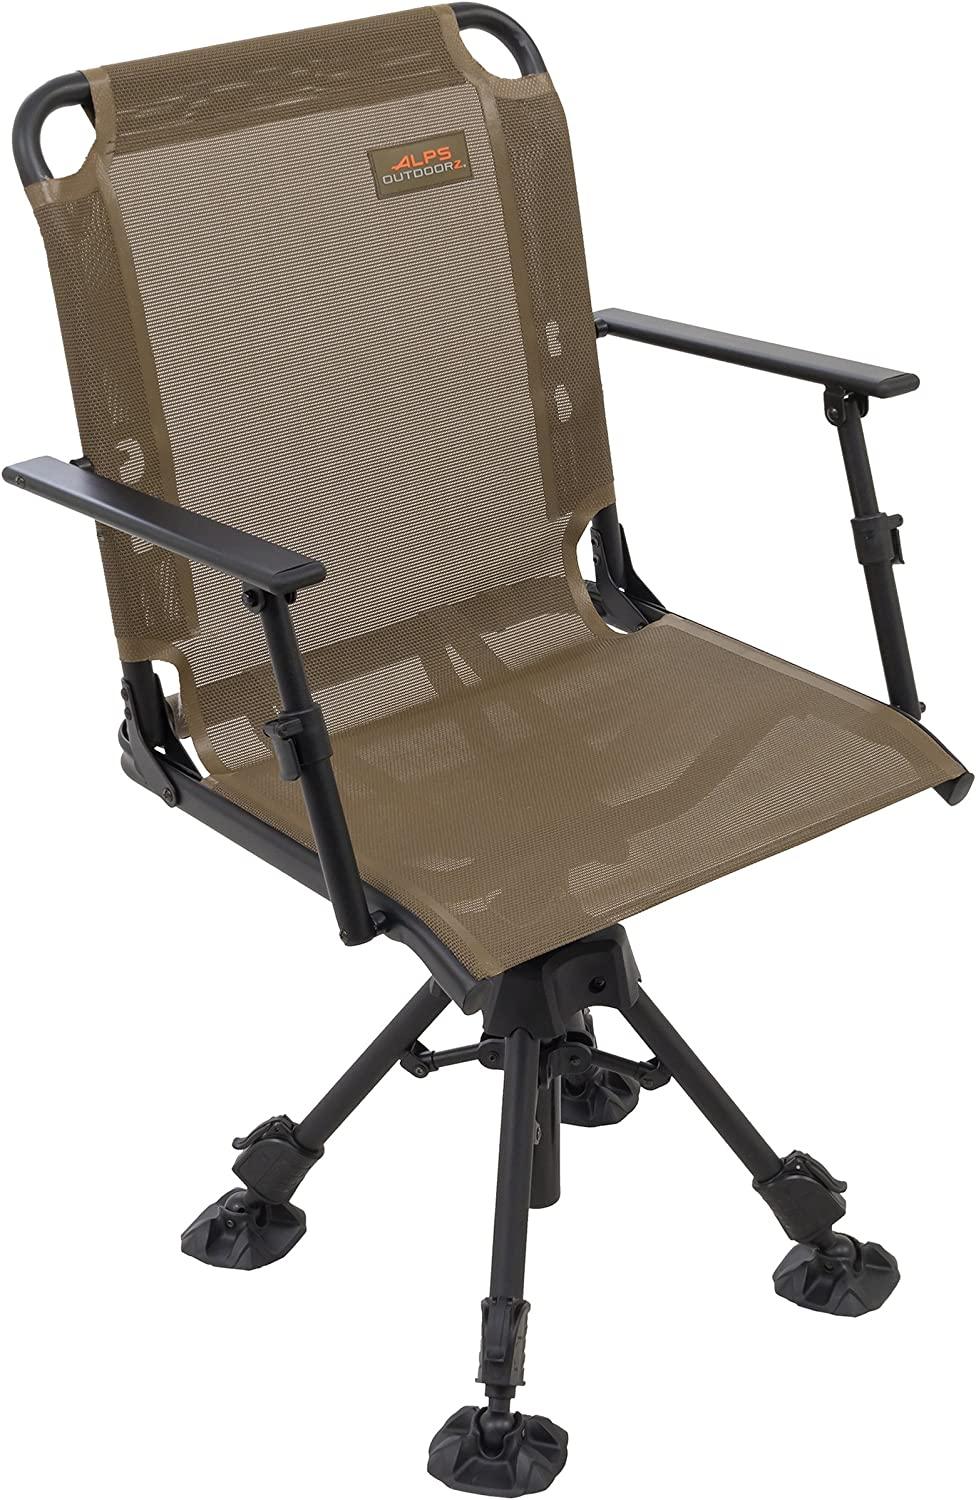 Top 10 Best Hunting chair that swivels 1